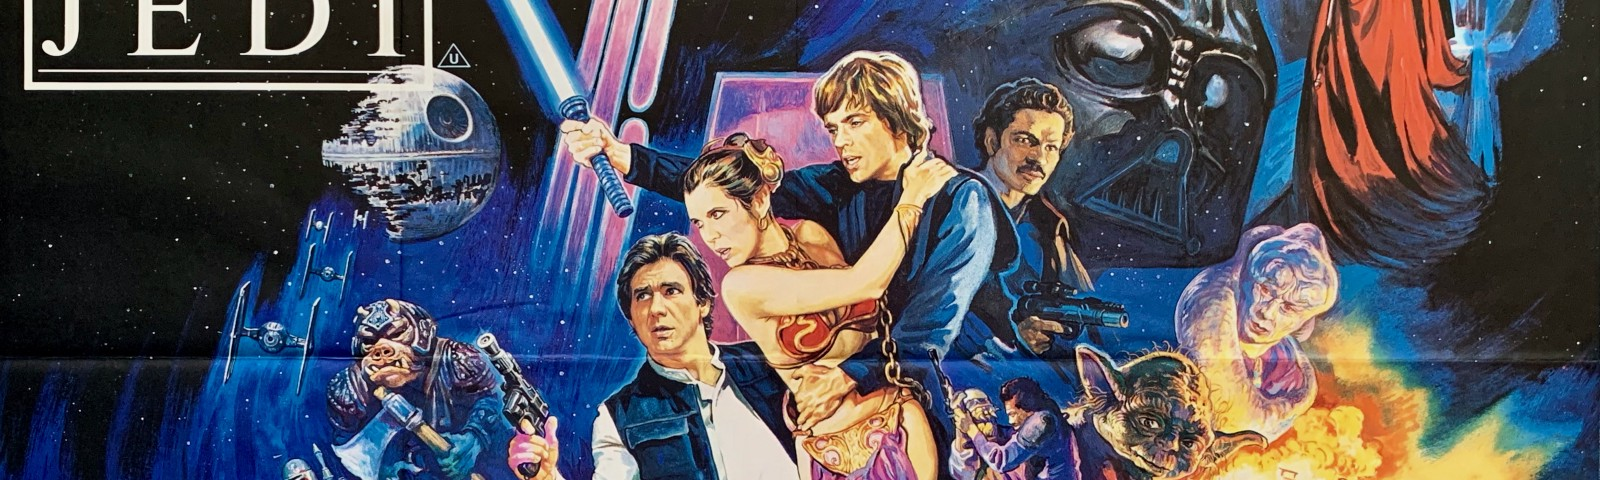 Latest Stories Published On Watch Star Wars Episode Iv A New Hope 1977 Movie Download English Dub Medium